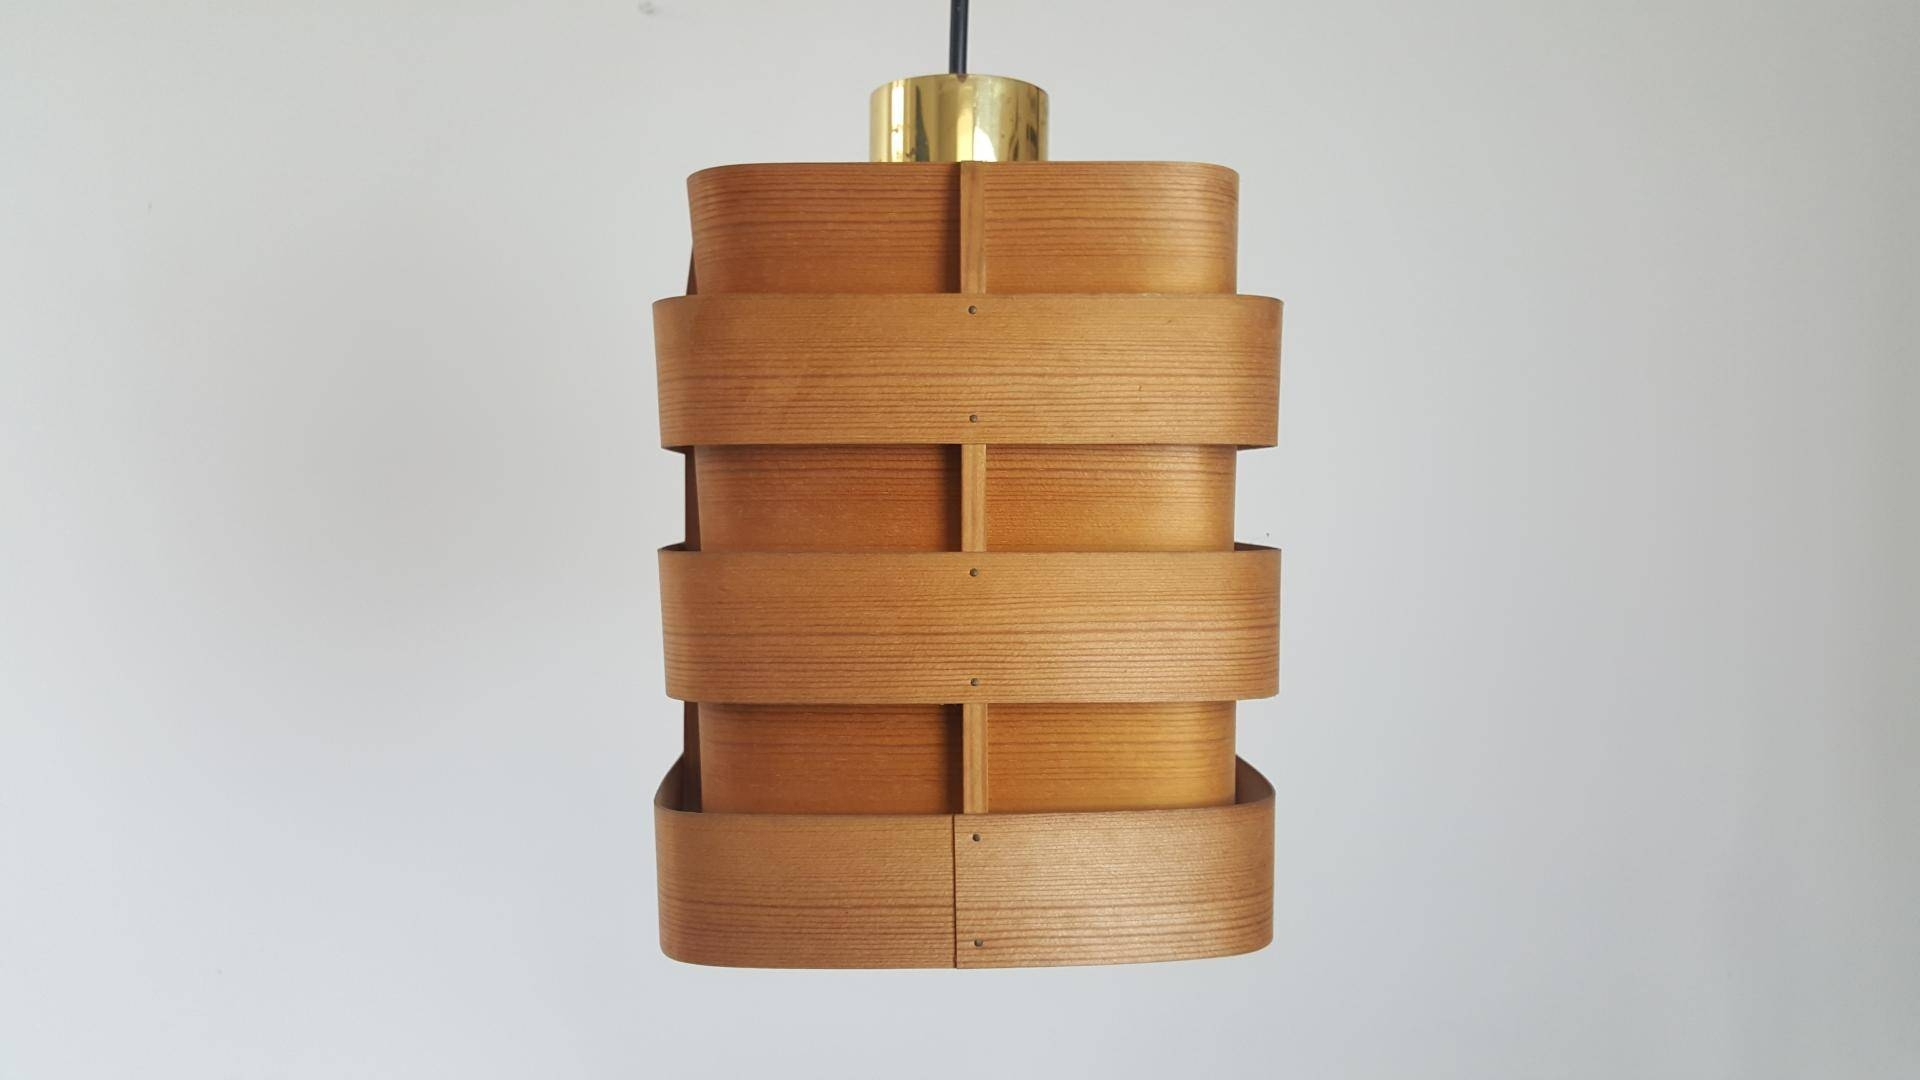 Bentwood Pendanthans-Agne Jakobsson For Ellysett, 1960S For with regard to Bentwood Pendants (Image 3 of 15)